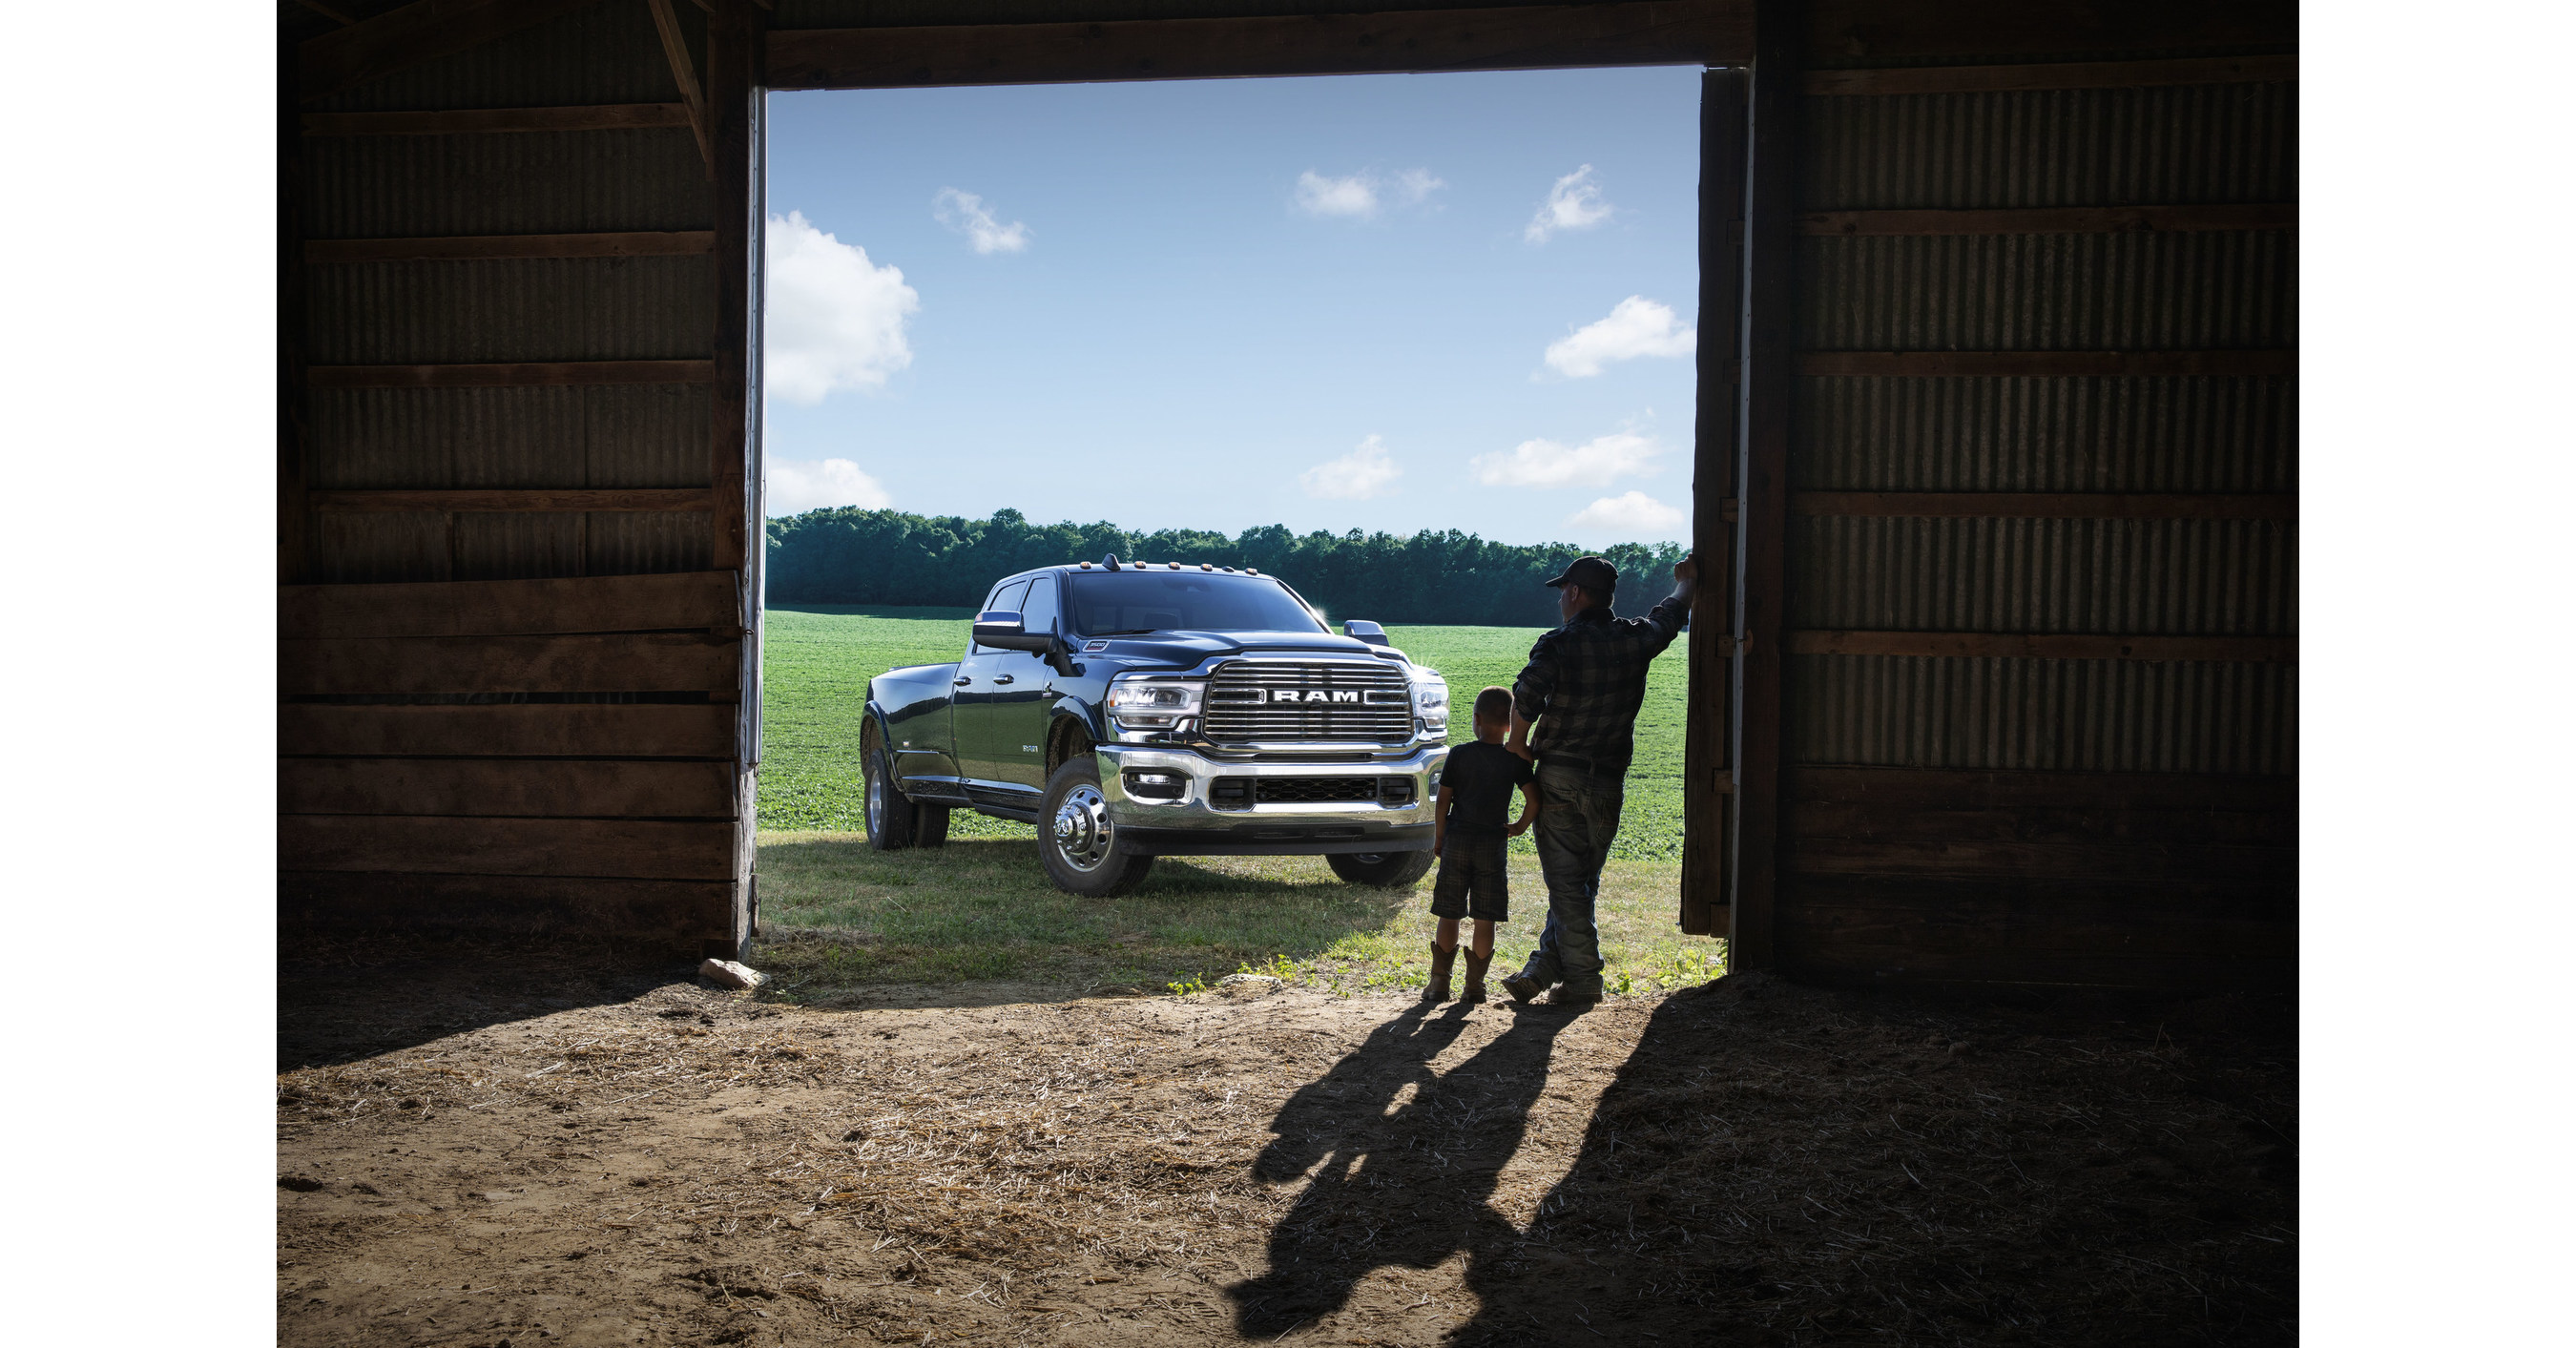 Ram supports agricultural community with new video